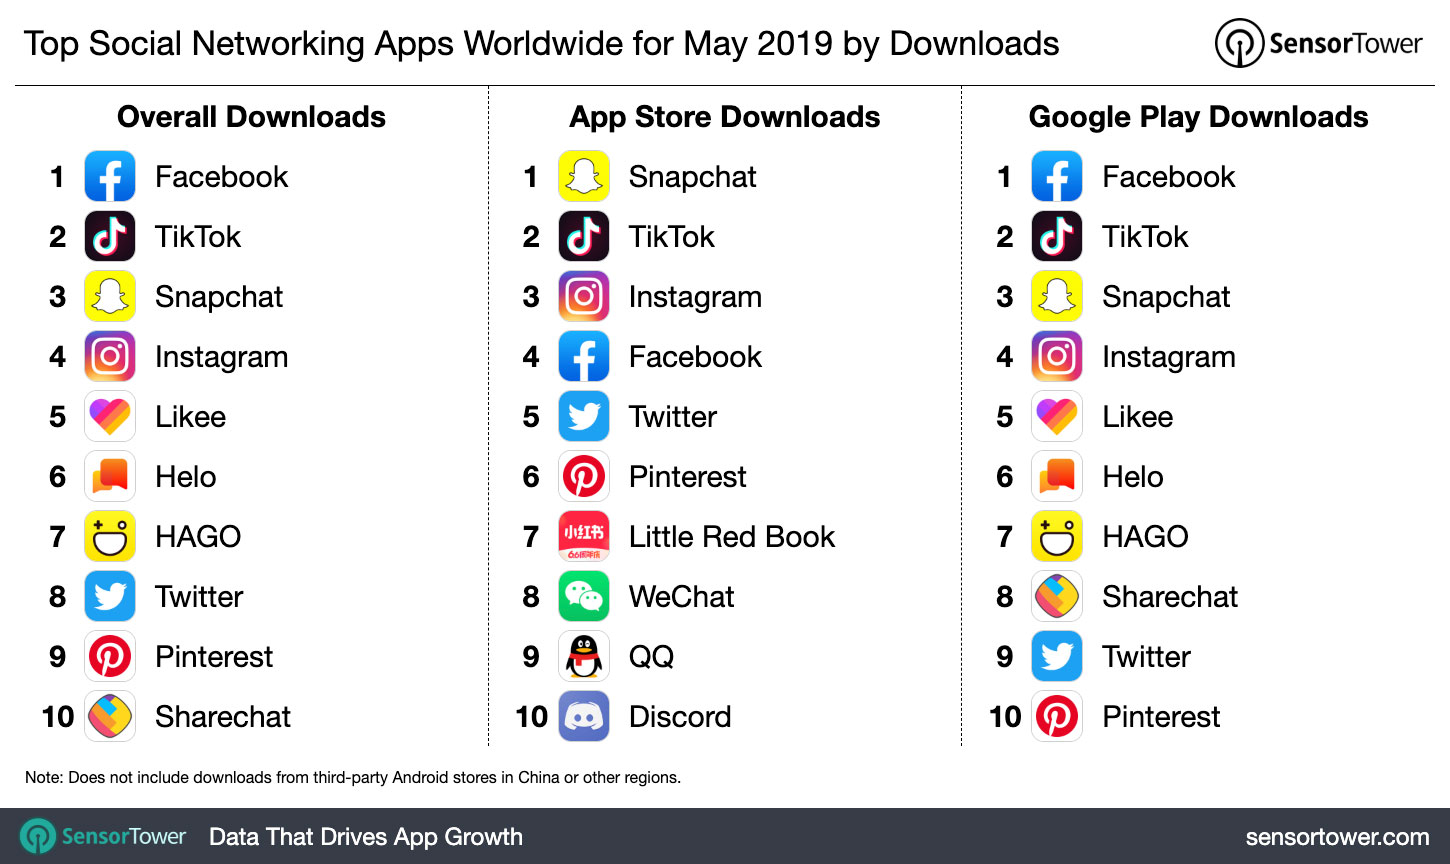 Top Social Networking Apps Worldwide for May 2019 by Downloads